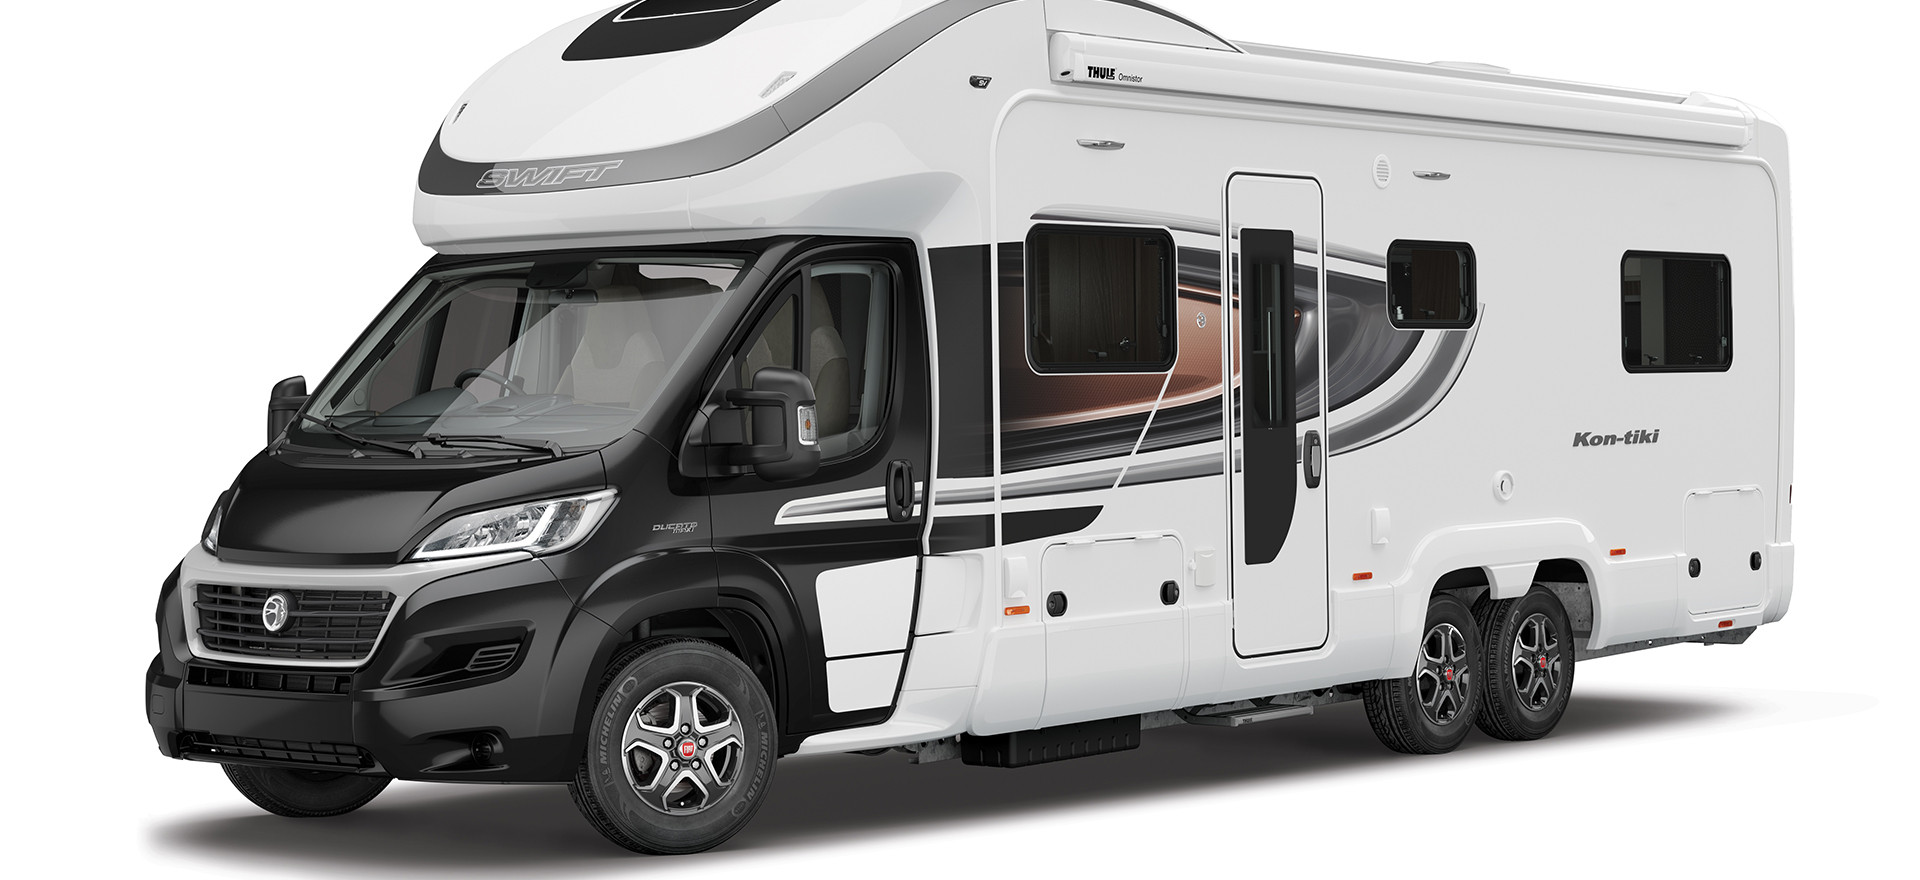 LIV Swift Kontiki 649 I Wheelchair Accessible Motorhome I Nuneaton I Warwickshire I UK